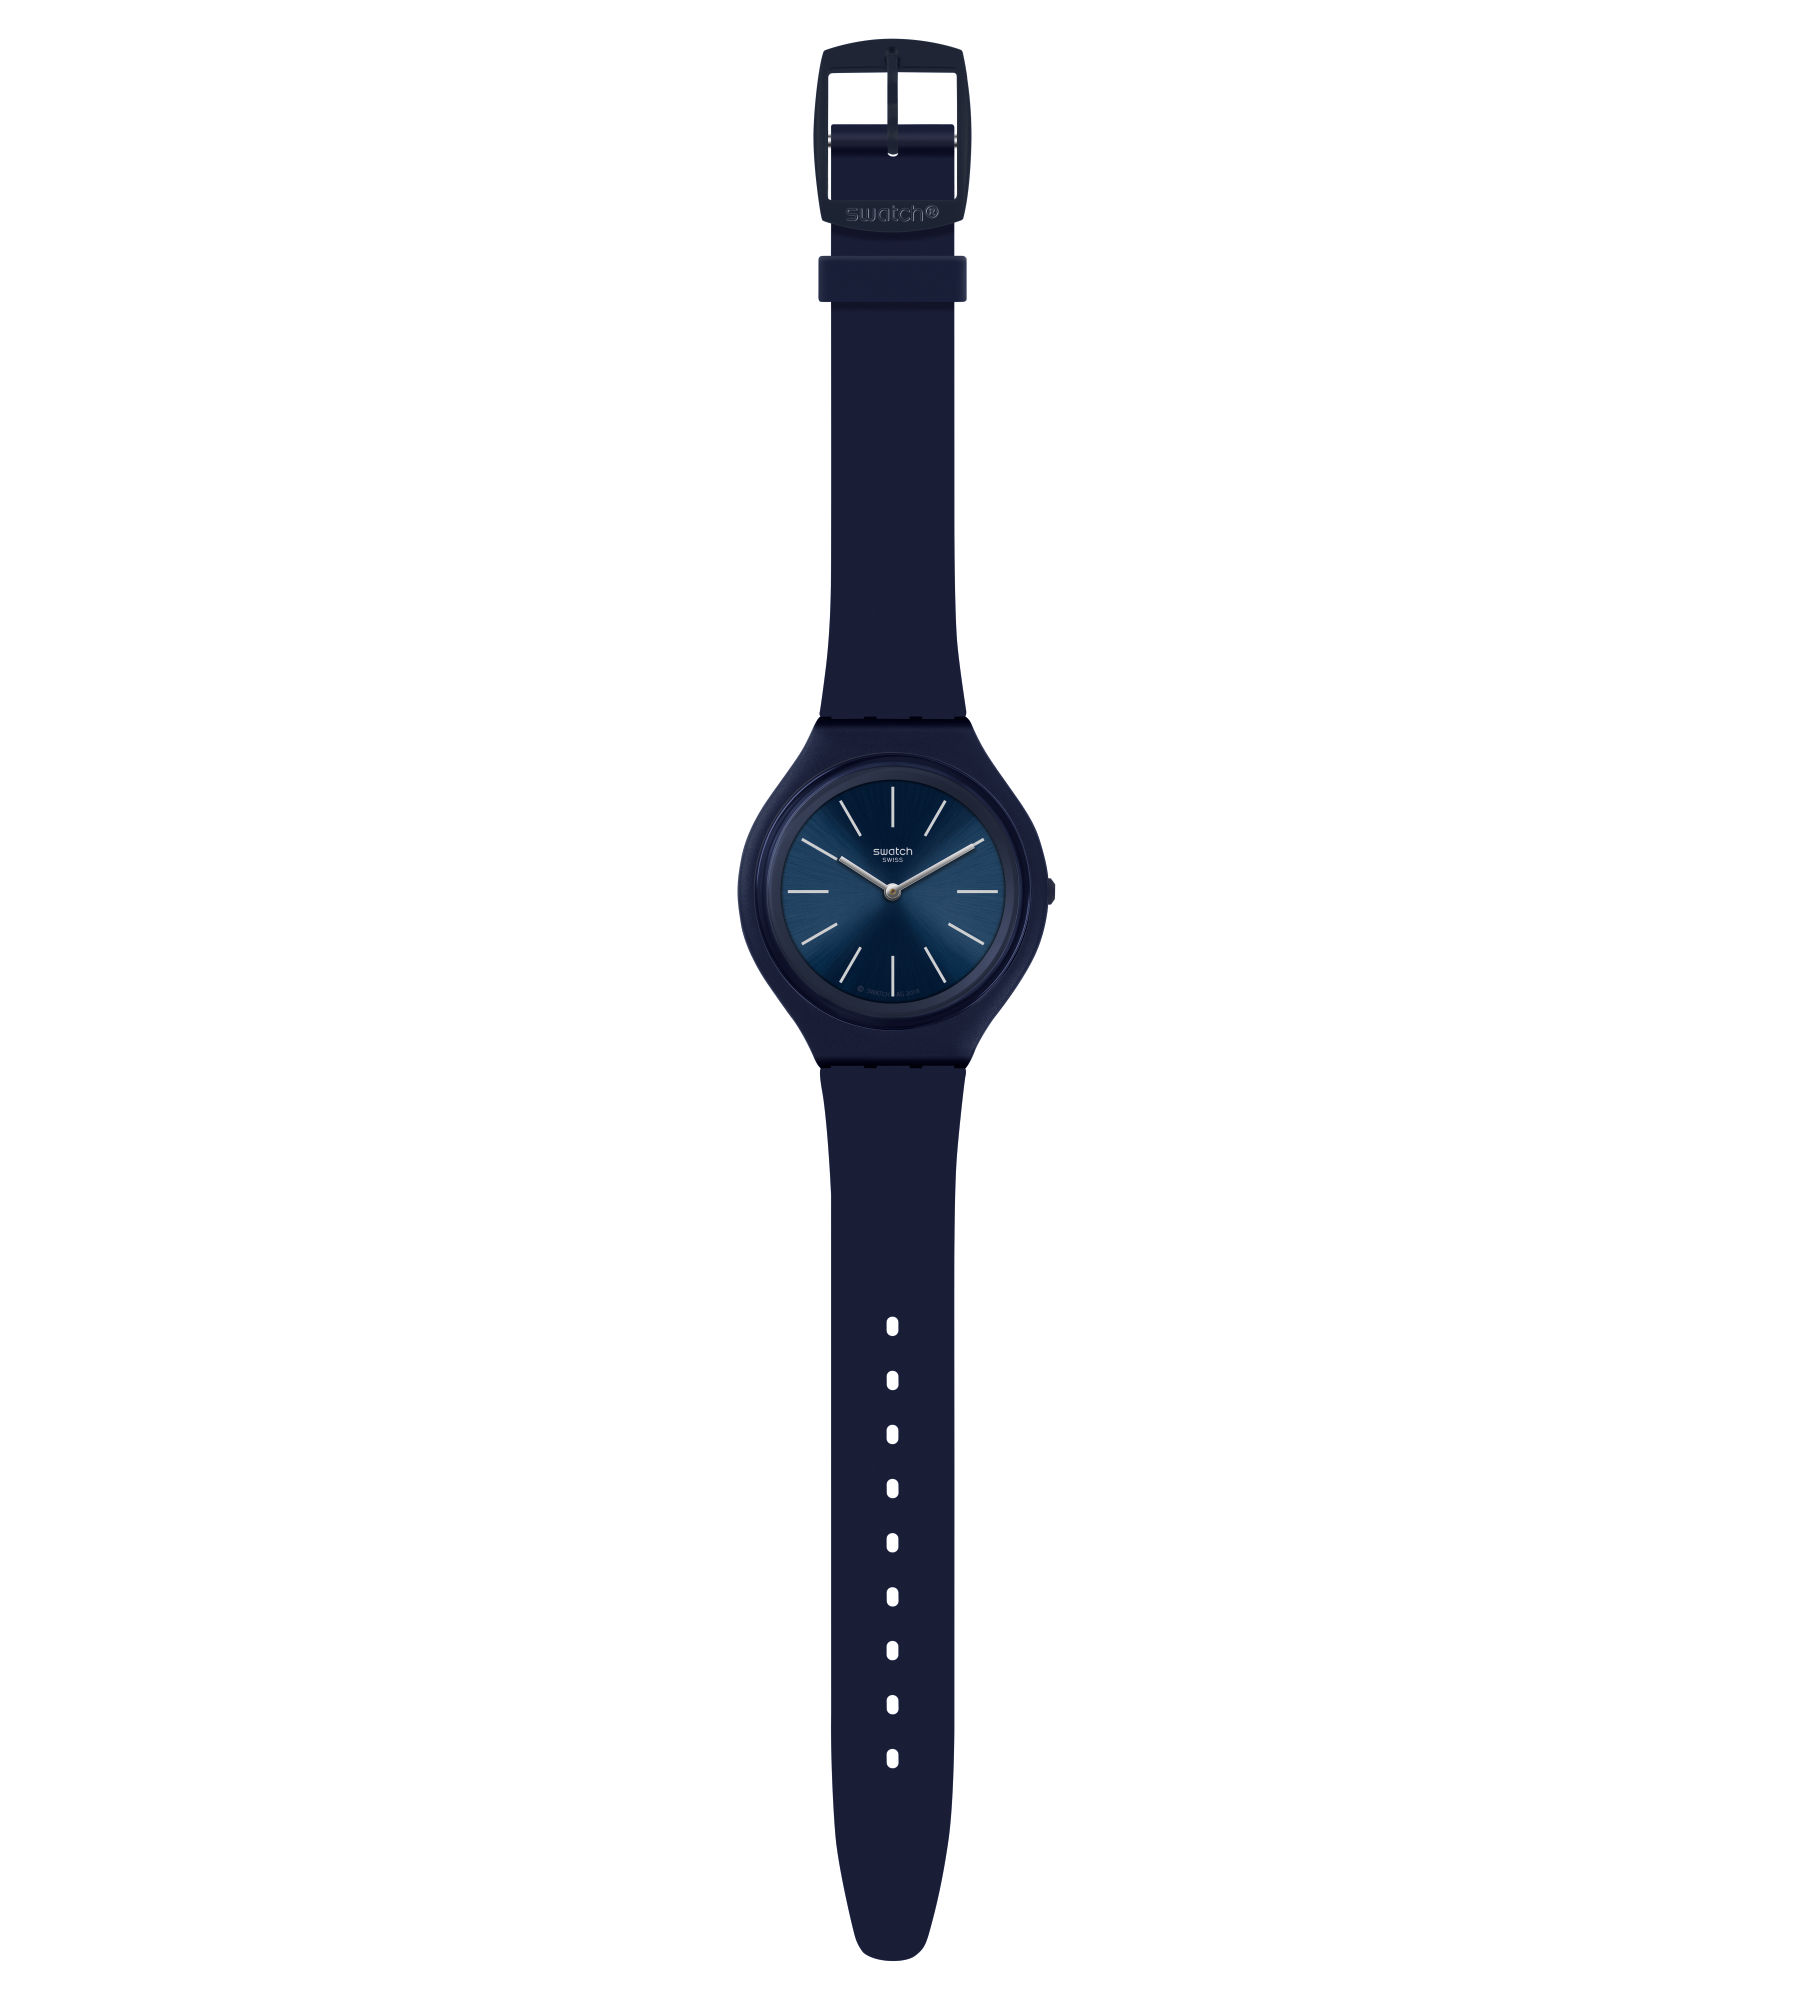 SWATCH WATCH MENS WATCH NAVY BLUE REF. SVUN107